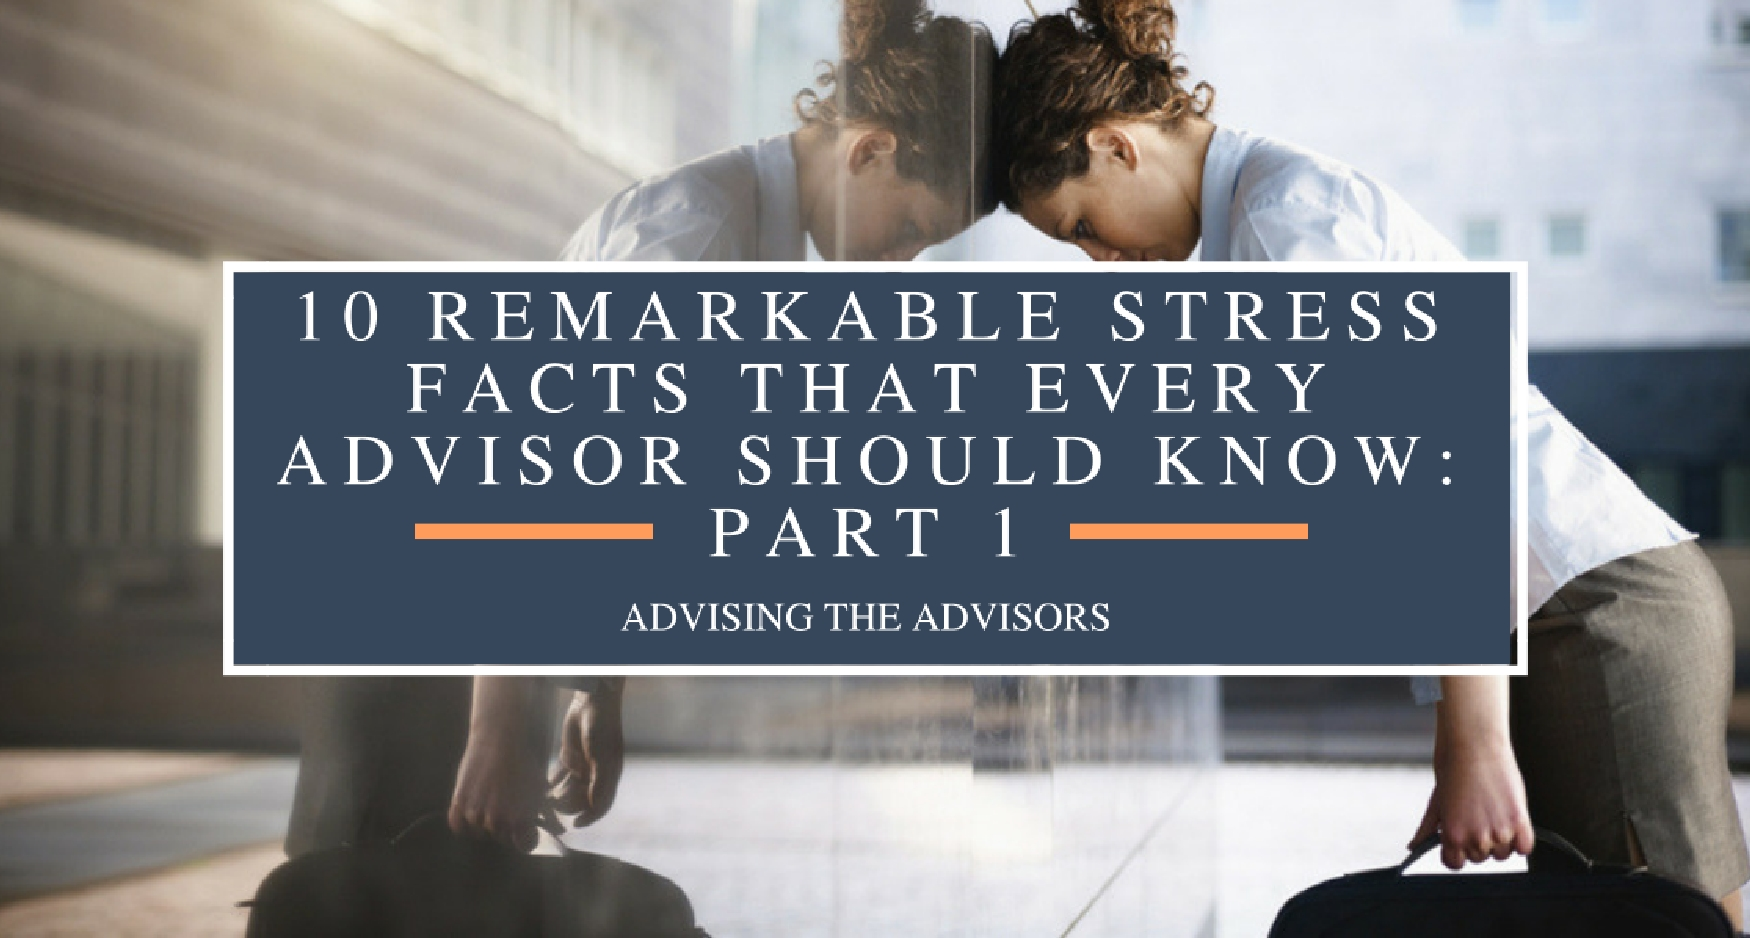 10 Remarkable Stress Facts that Every Advisor Should Know-Part 1